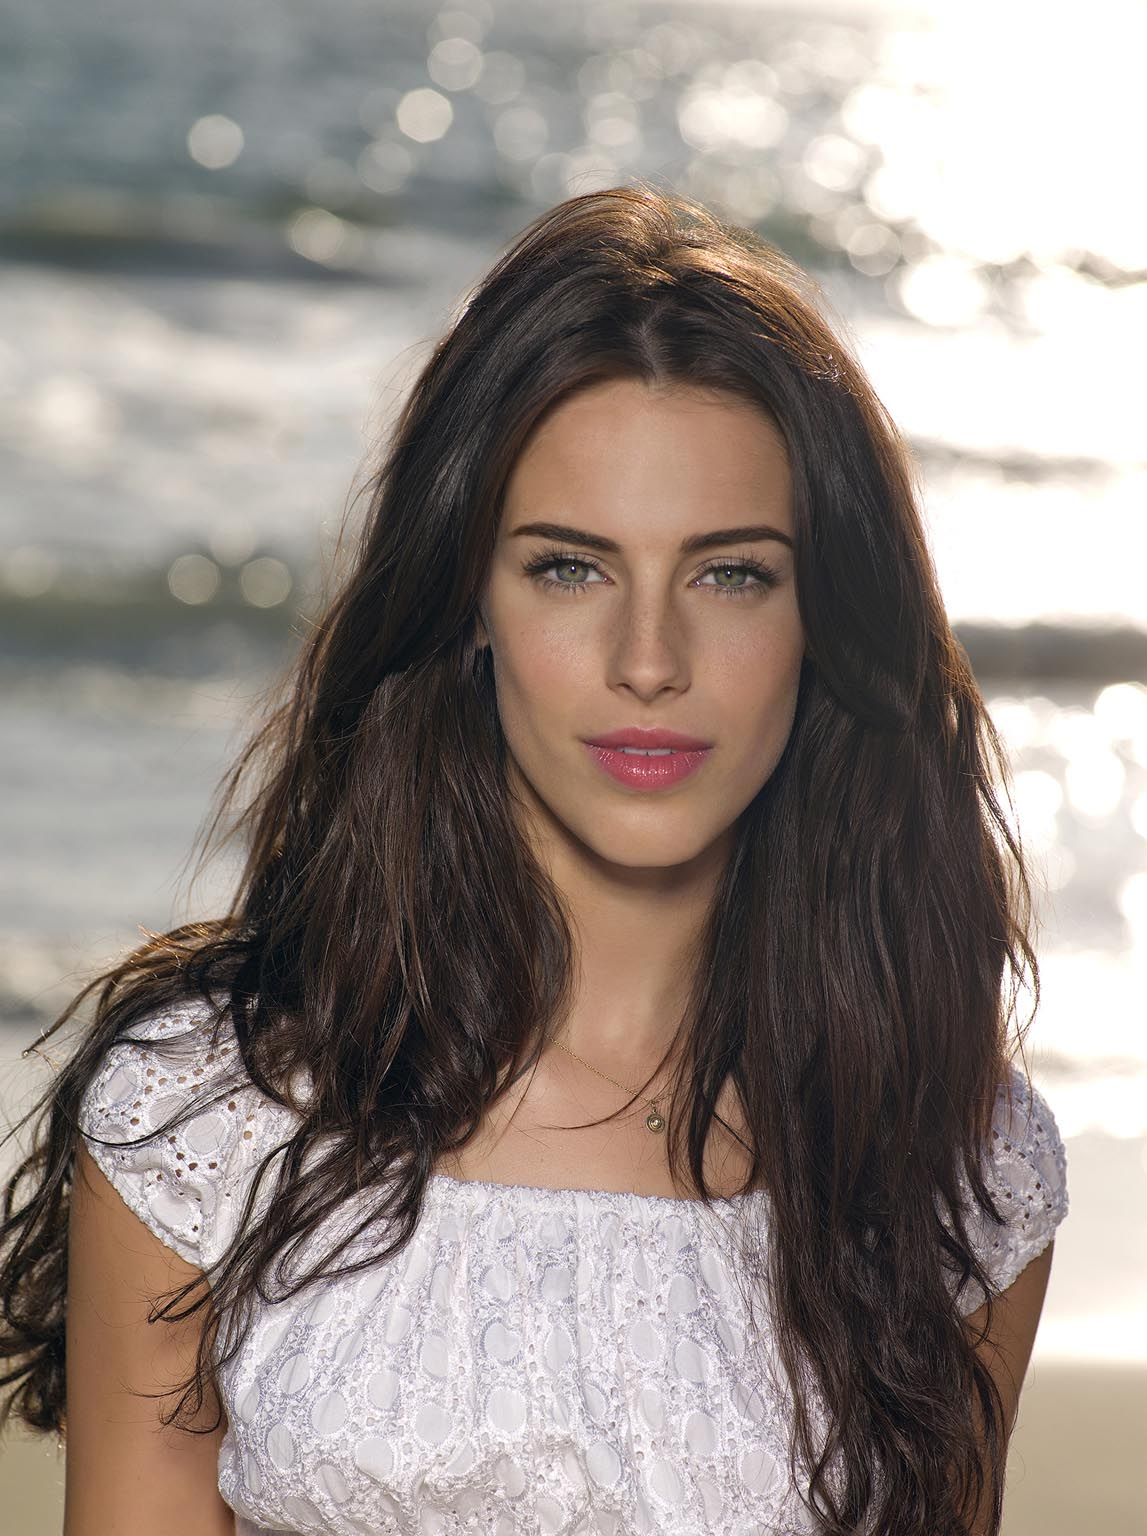 90210's Jessica Lowndes Talks Beauty